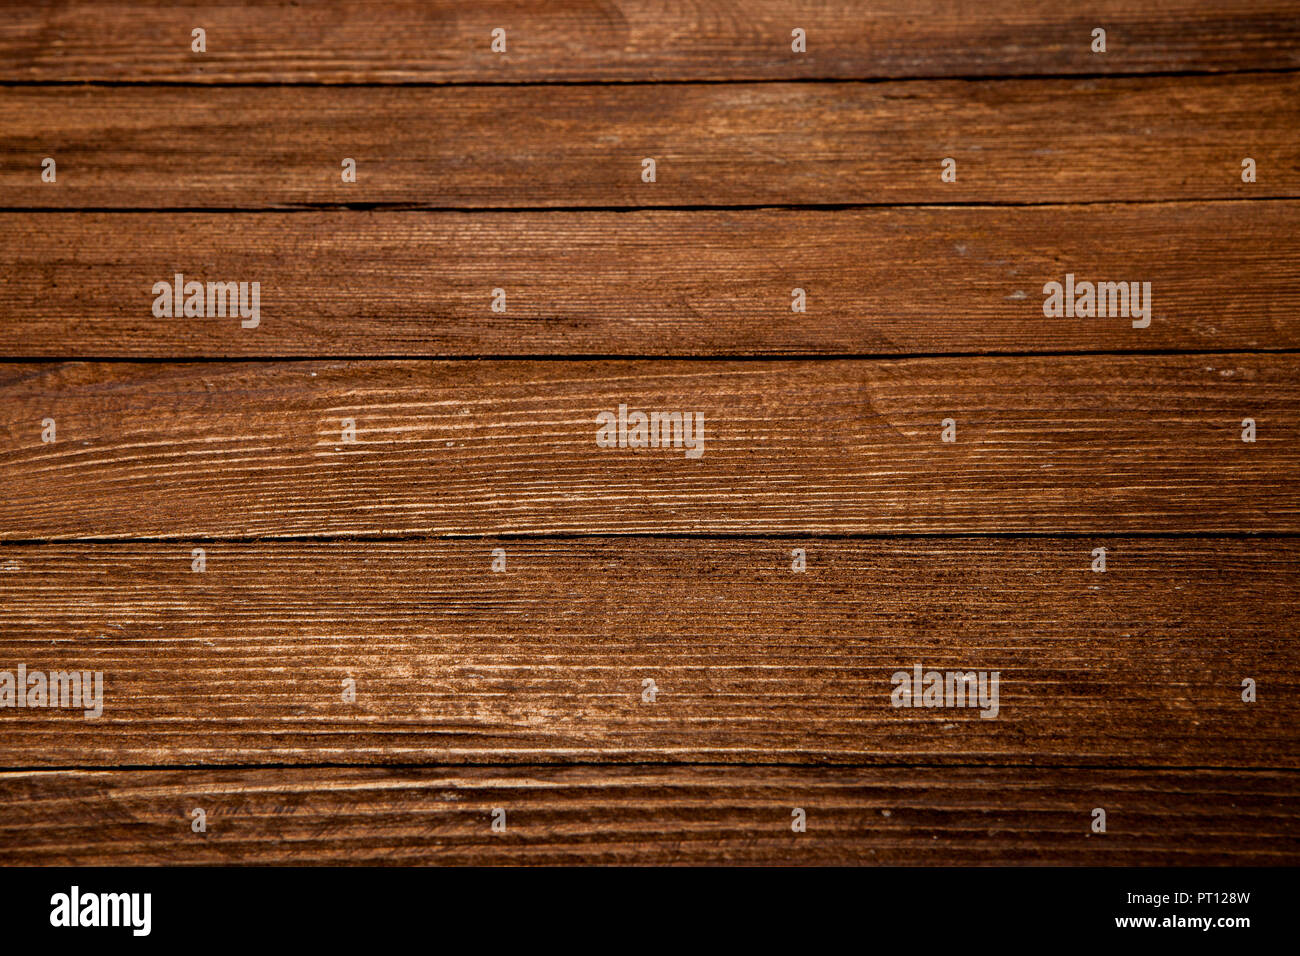 Dark hardwood texture High Resolution Dark Wooden Texture Wood Brown Texture Background Old Panels Retro Wooden Table Rustic Background Vintage Colored Surface Alamy Dark Wooden Texture Wood Brown Texture Background Old Panels